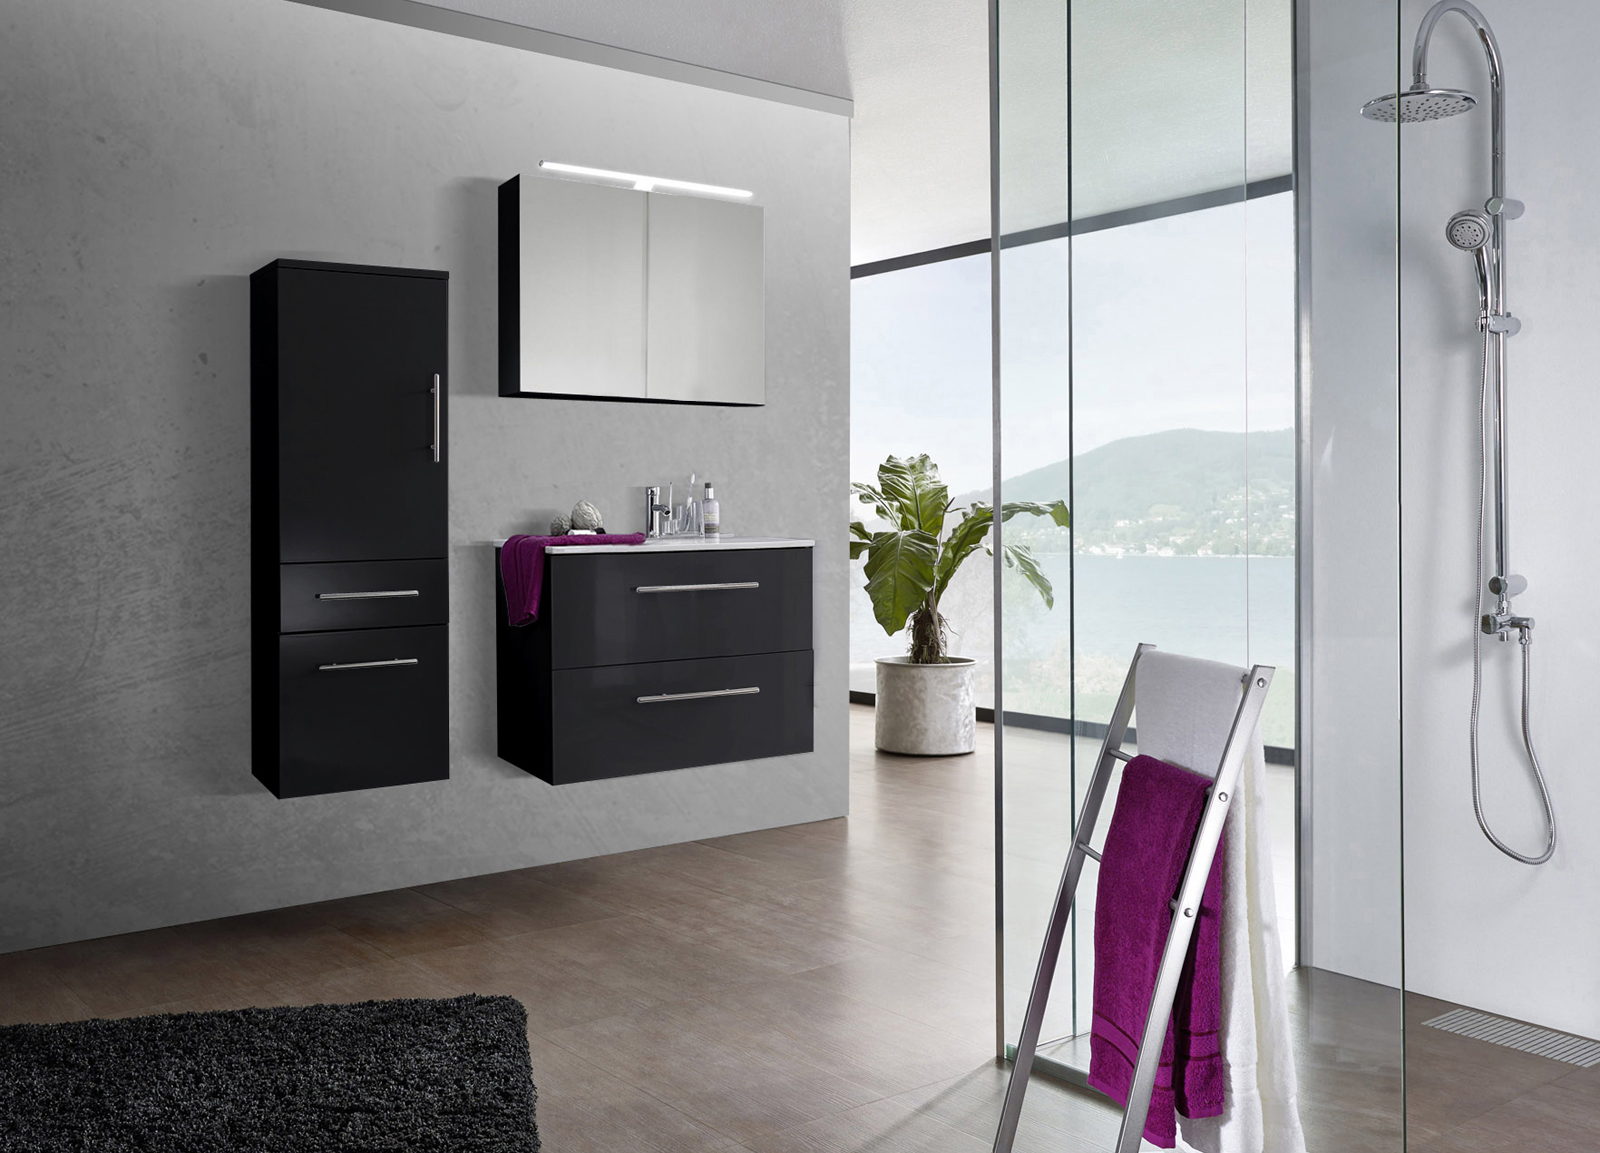 sam 3tlg badezimmer set spiegelschrank schwarz 80 cm verena. Black Bedroom Furniture Sets. Home Design Ideas